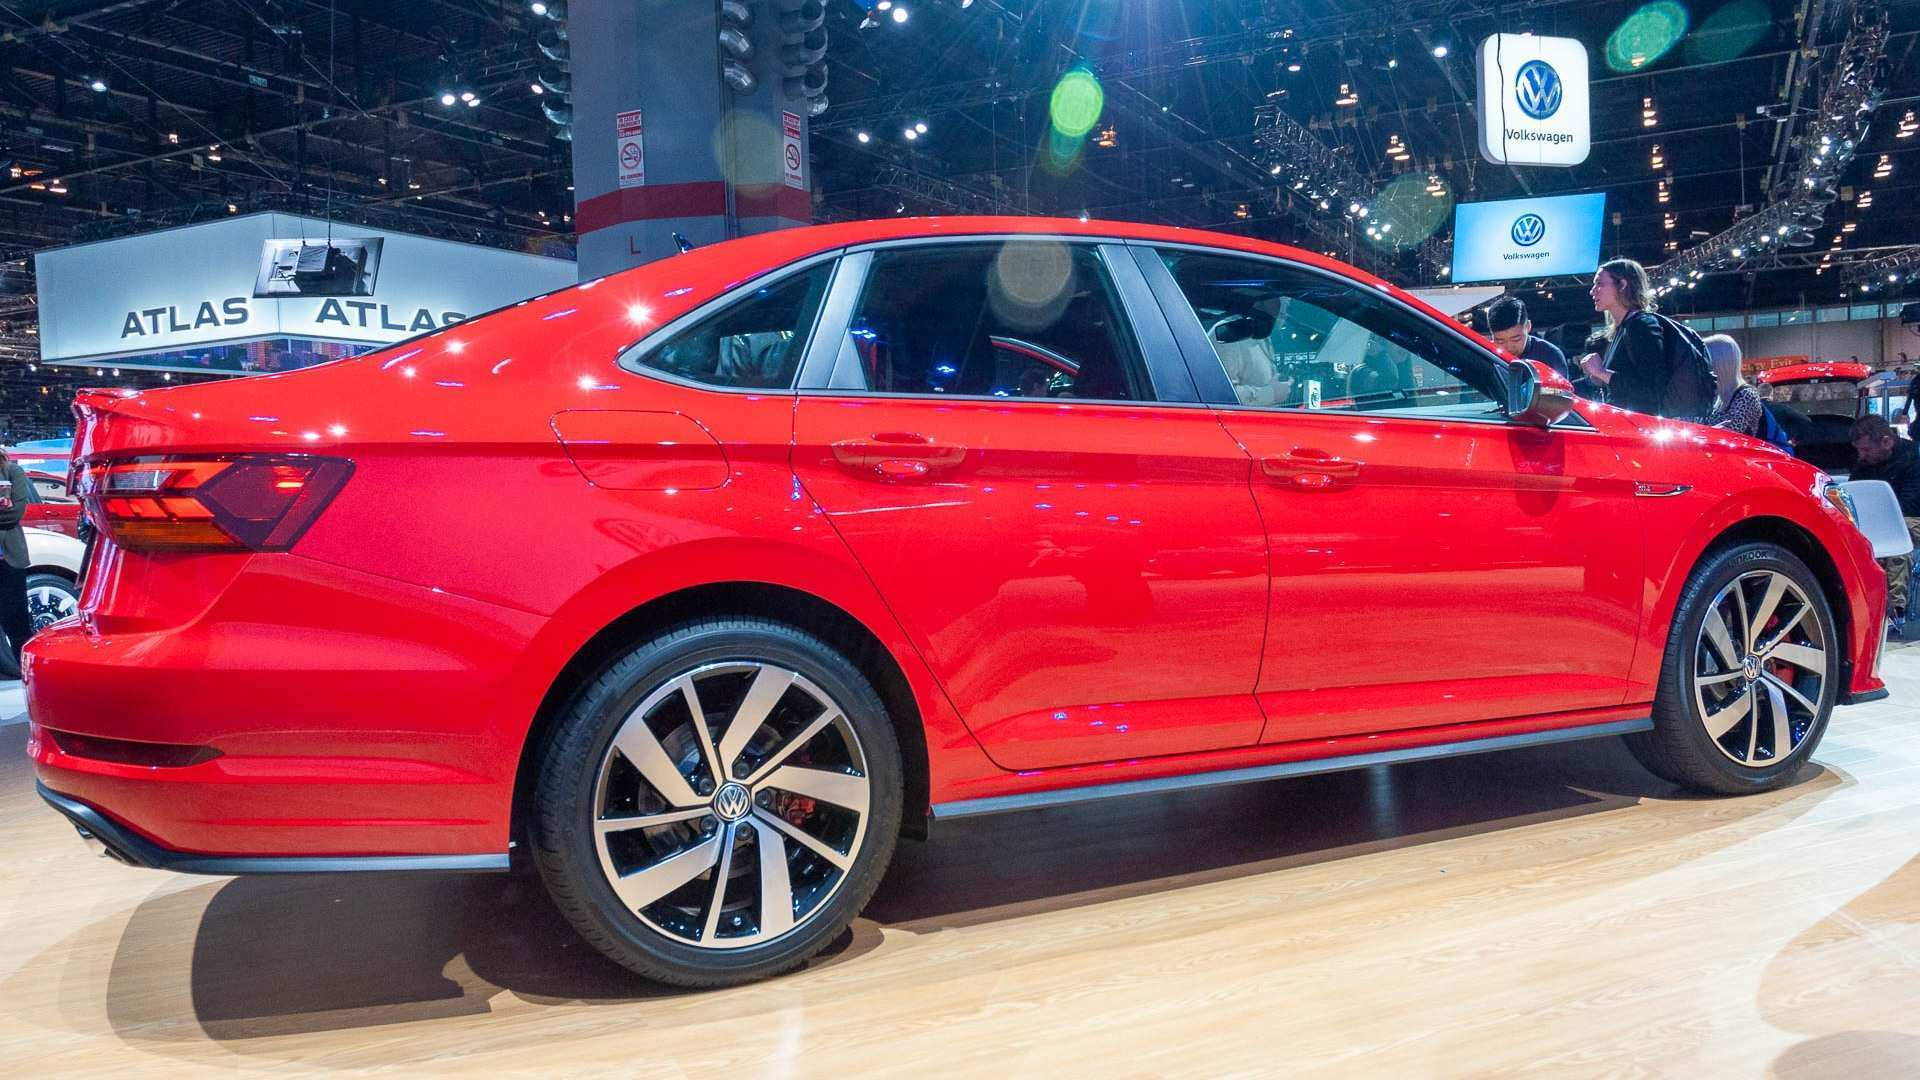 23 Great New Volkswagen Jetta Gli 2019 Redesign And Concept Model for New Volkswagen Jetta Gli 2019 Redesign And Concept